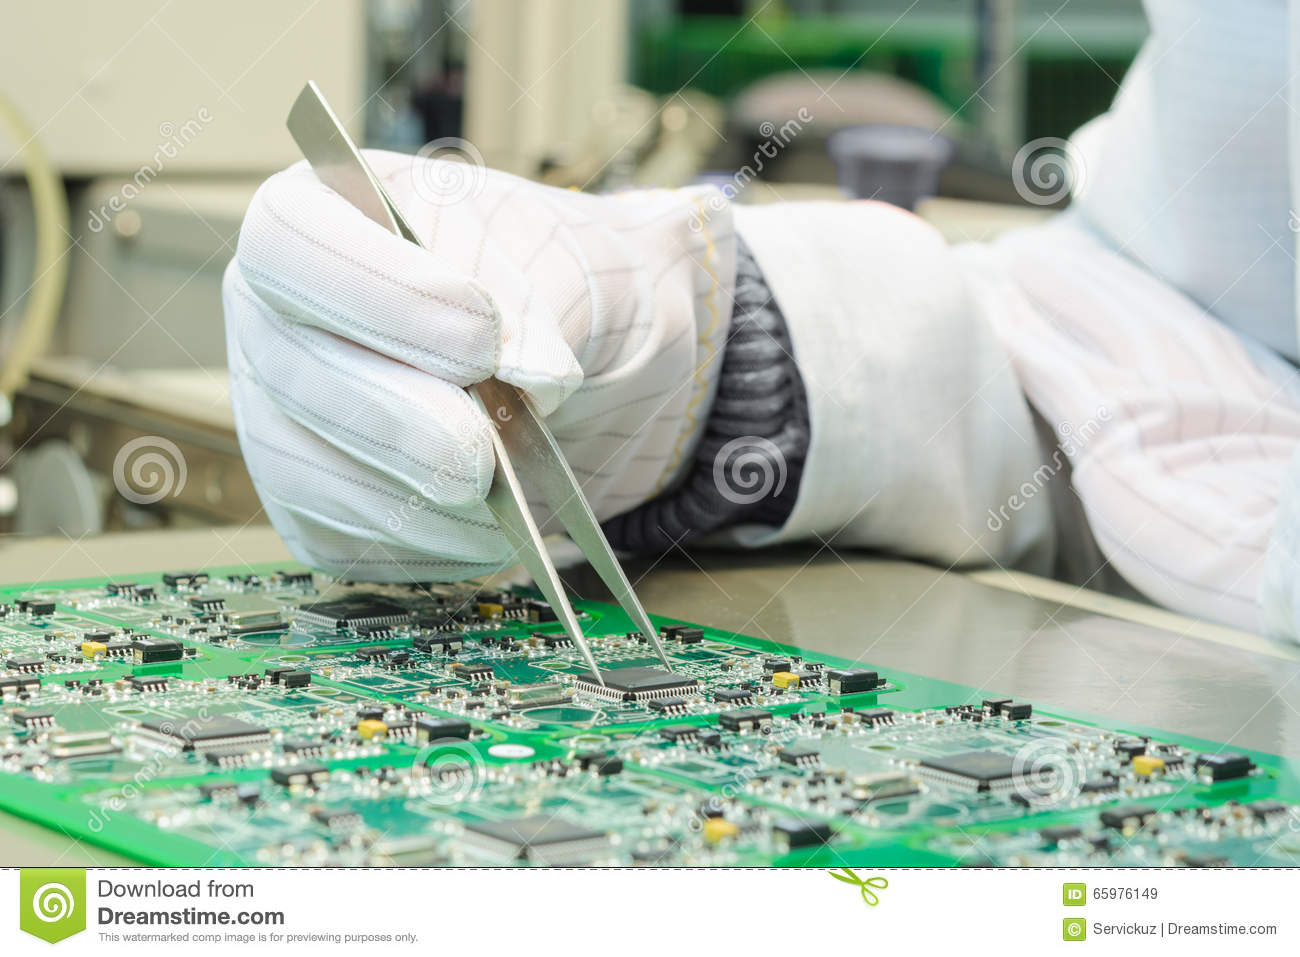 Dna Gene Switch Circuit Board Stock Photo Getty Images